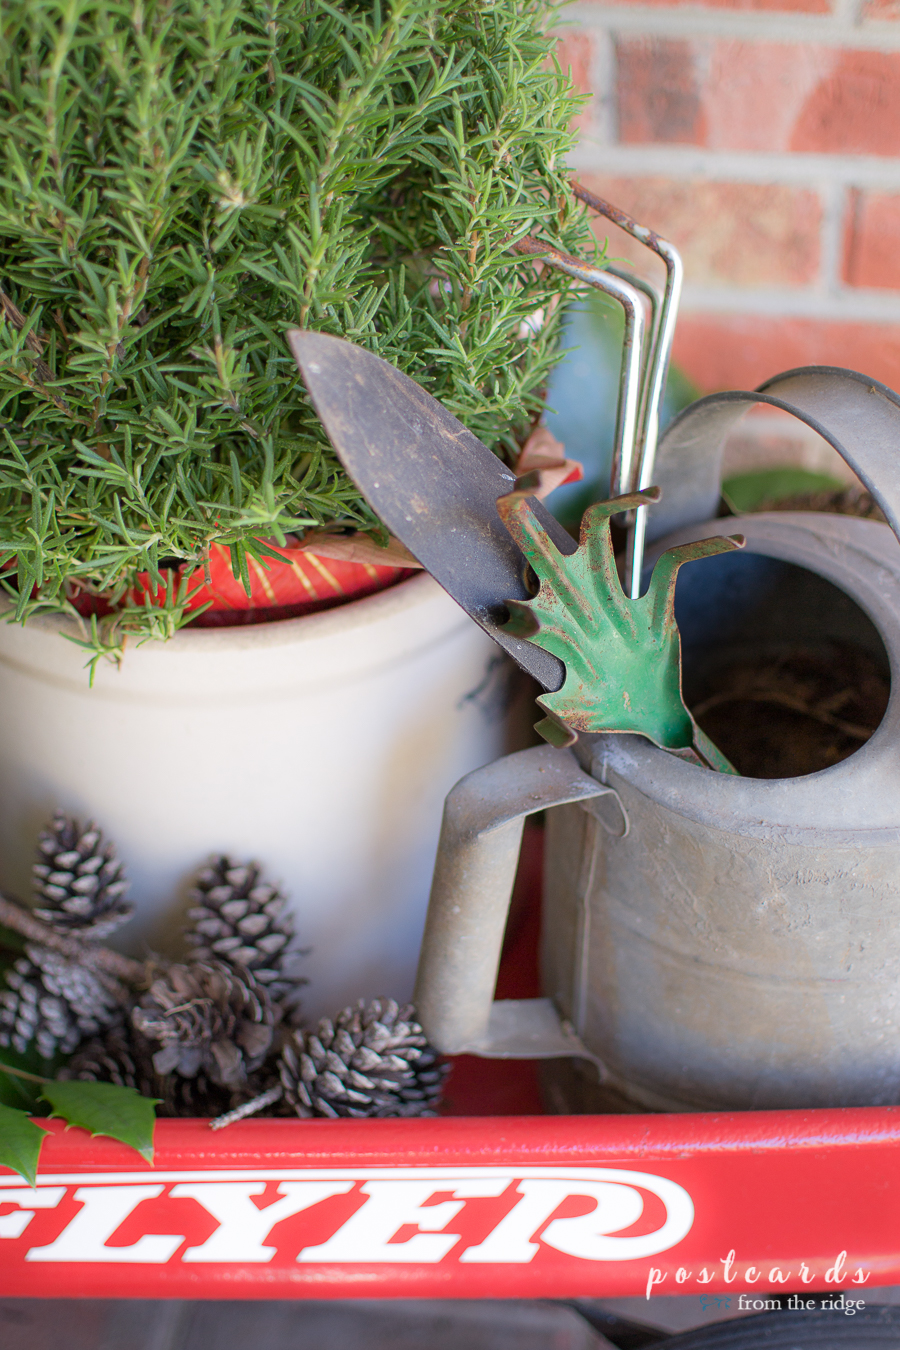 vintage watering can and gardening tools